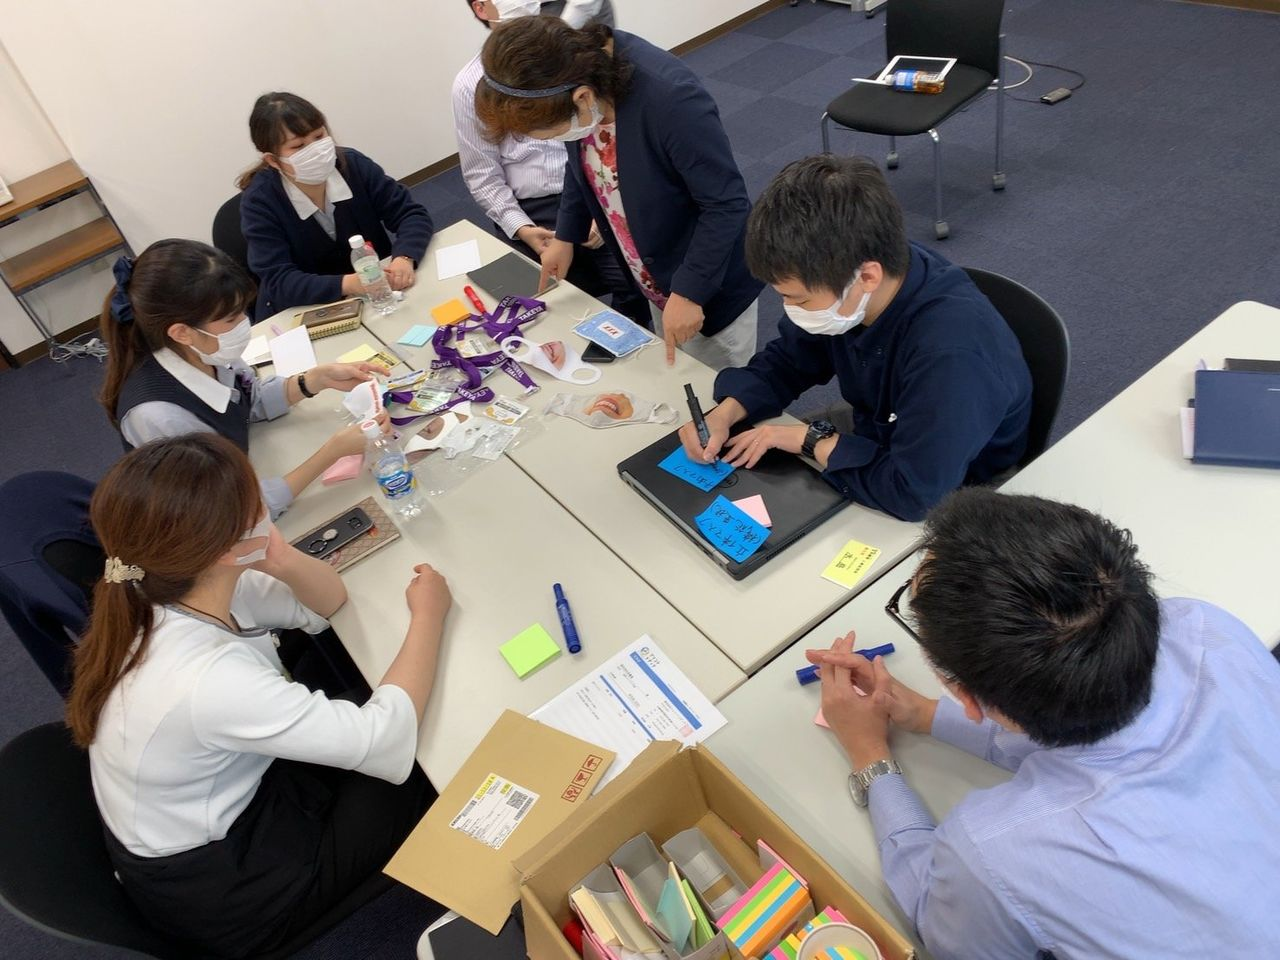 Team members of the smile mask project during a meeting. (Courtesy of Takeya)